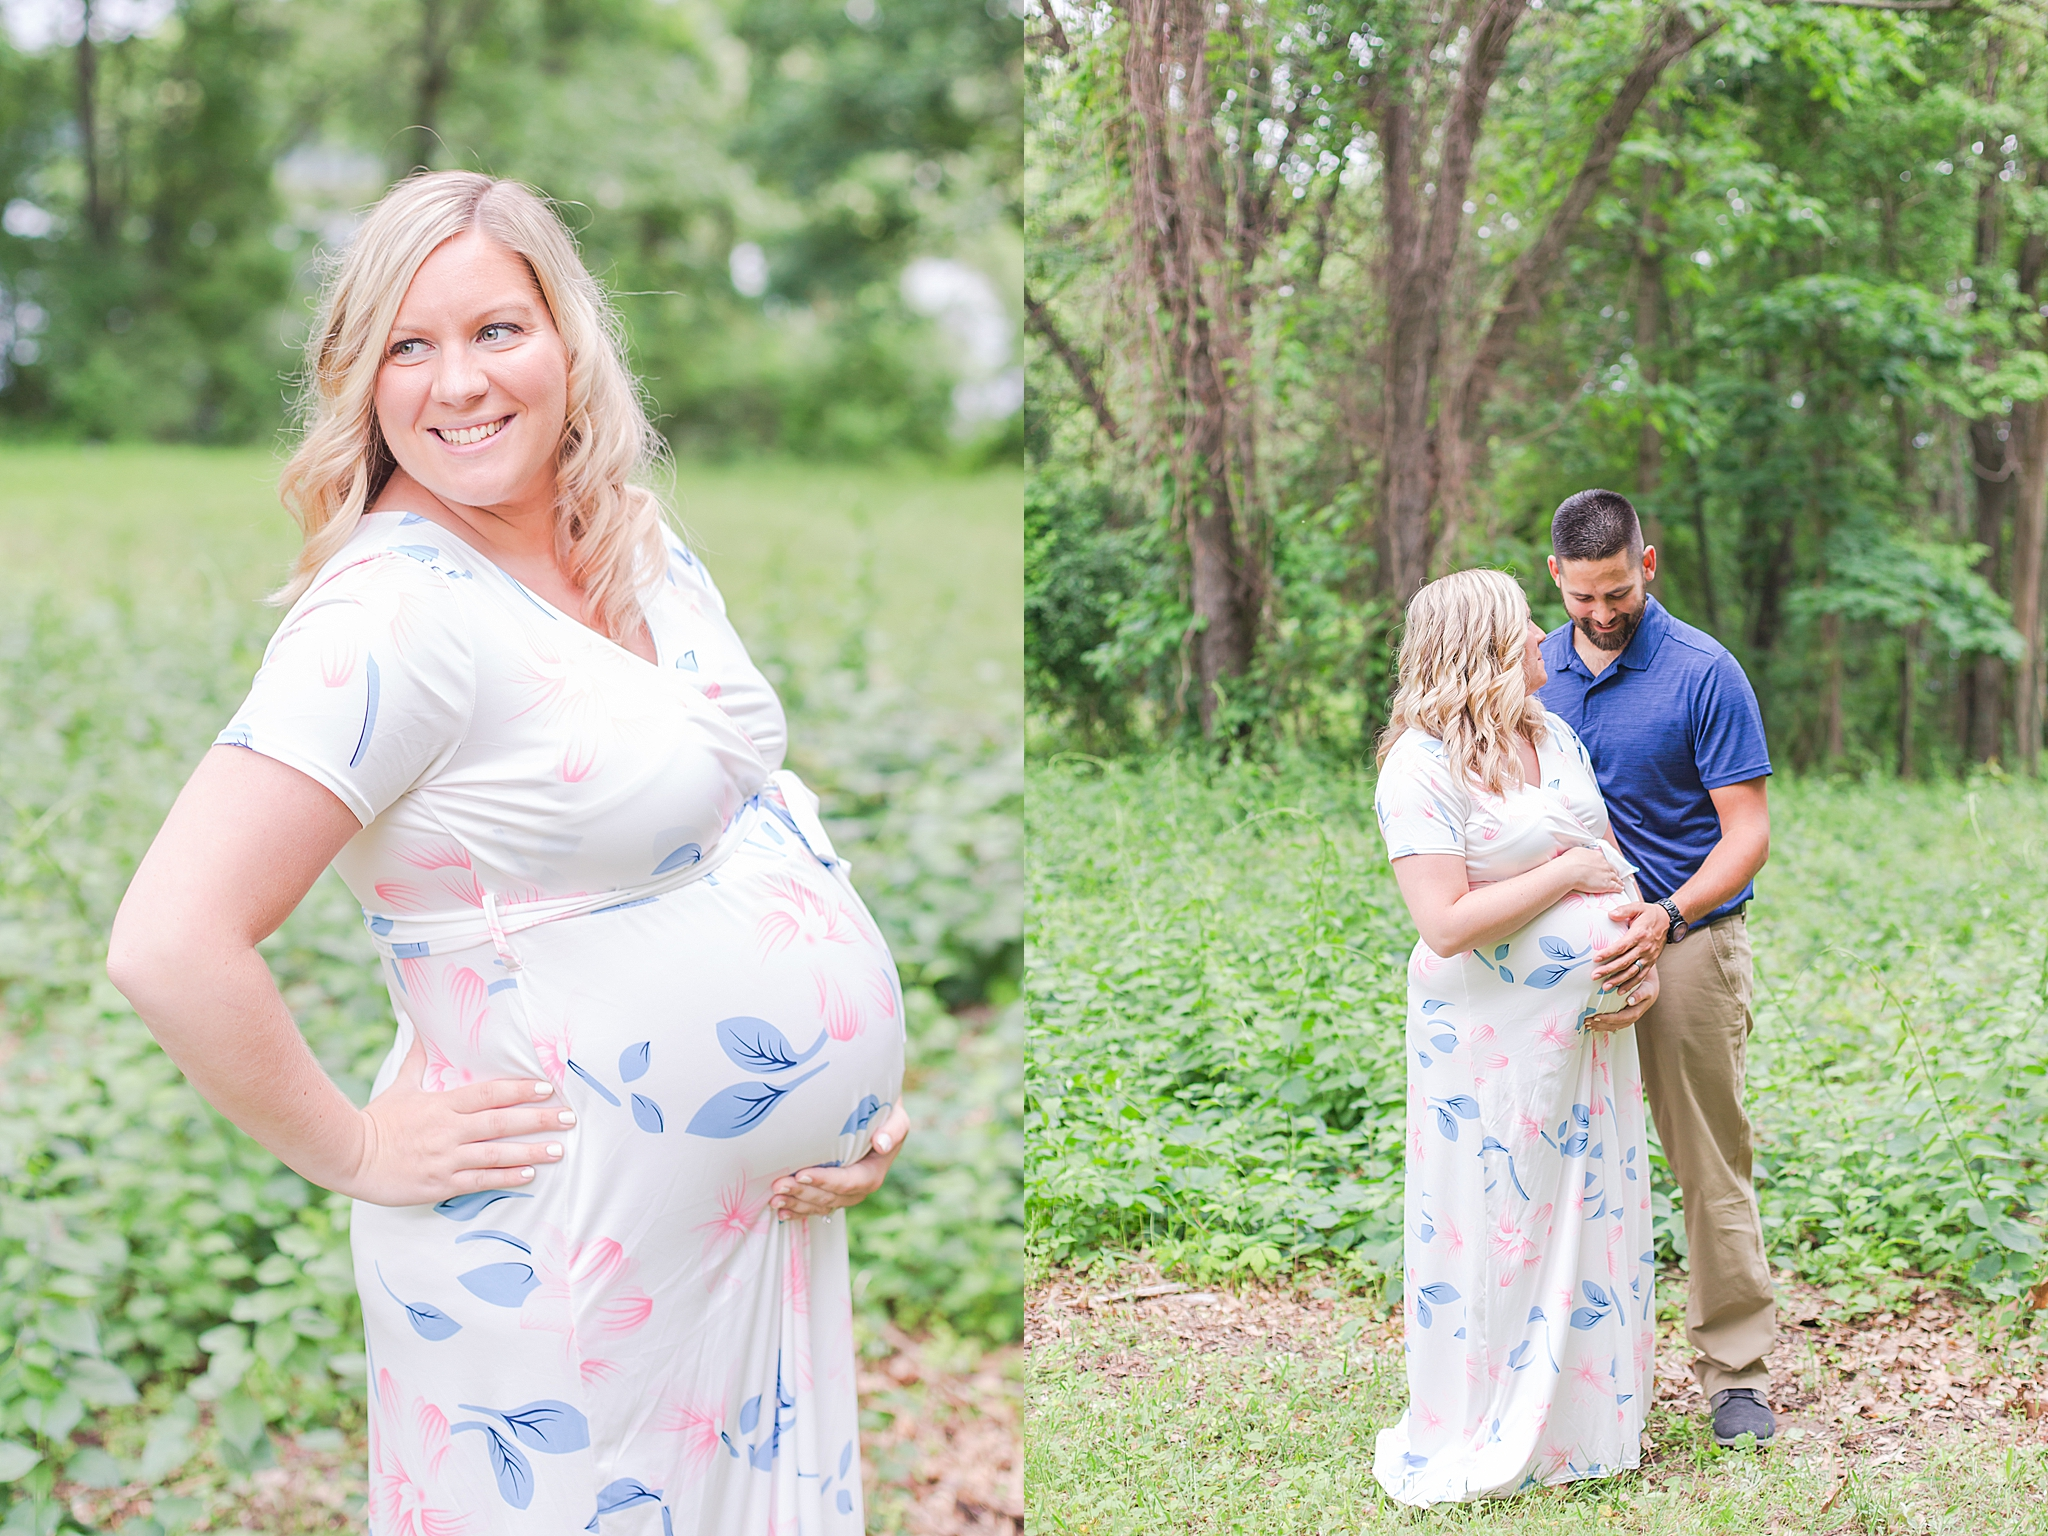 detroit-wedding-photographer-kensington-metro-park-maternity-keli-derek-by-courtney-carolyn-photography_0016.jpg